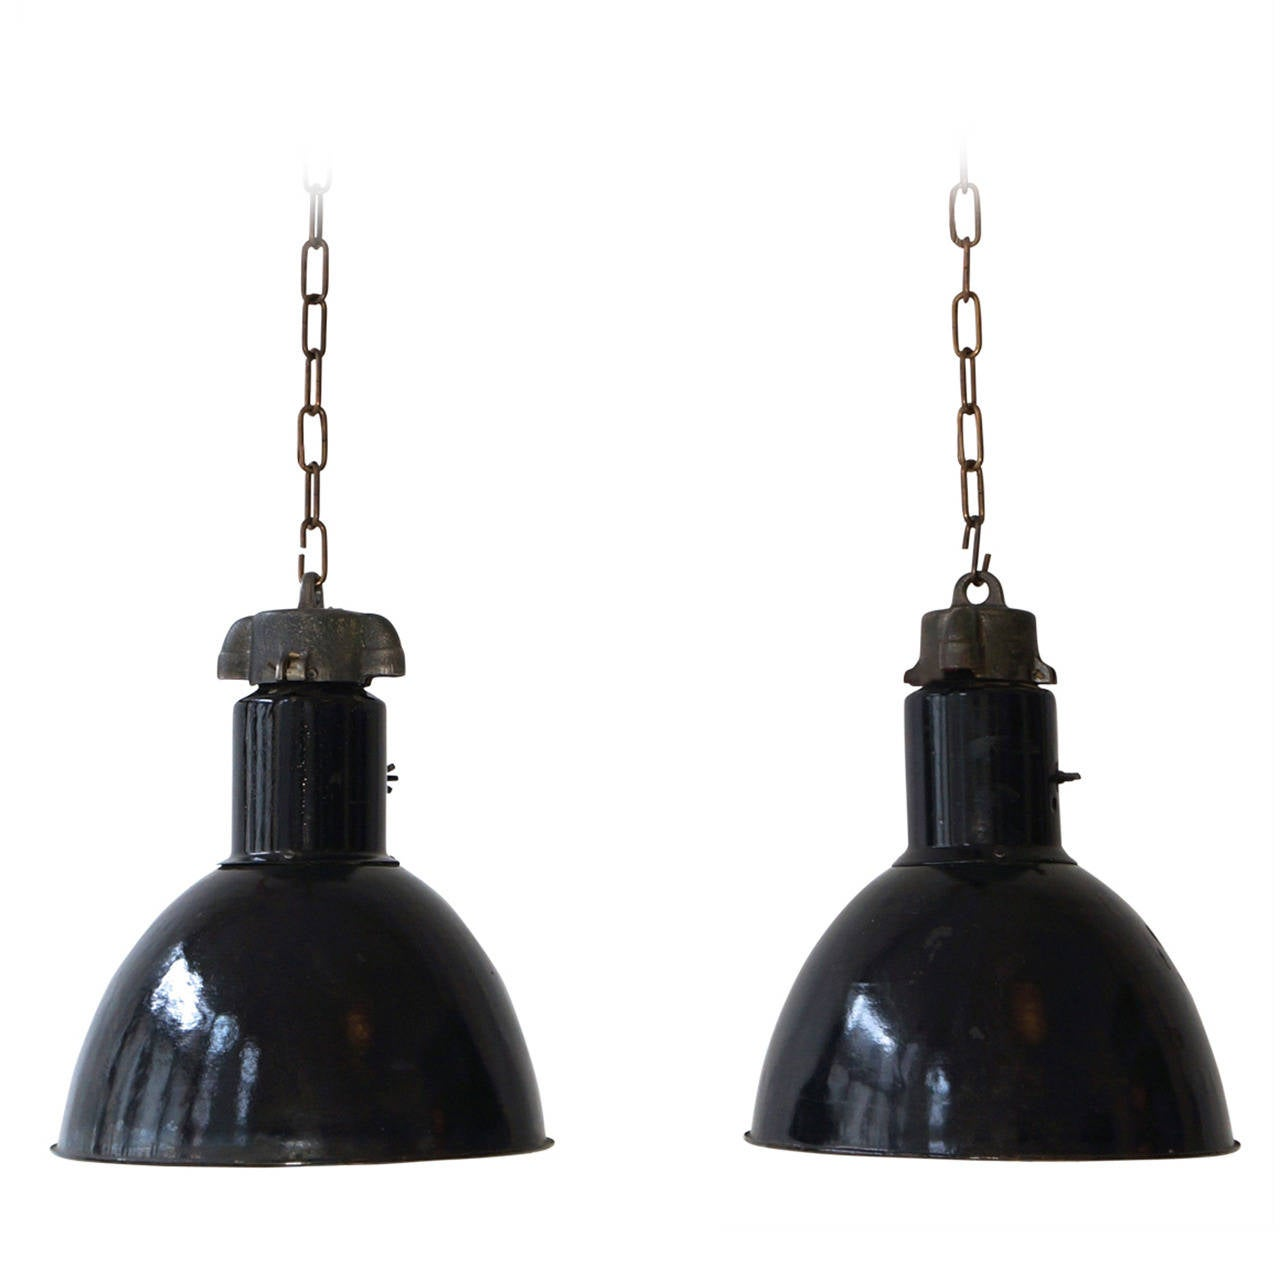 Pair of industrial pendant lights for sale at 1stdibs for Industrial bulb pendant